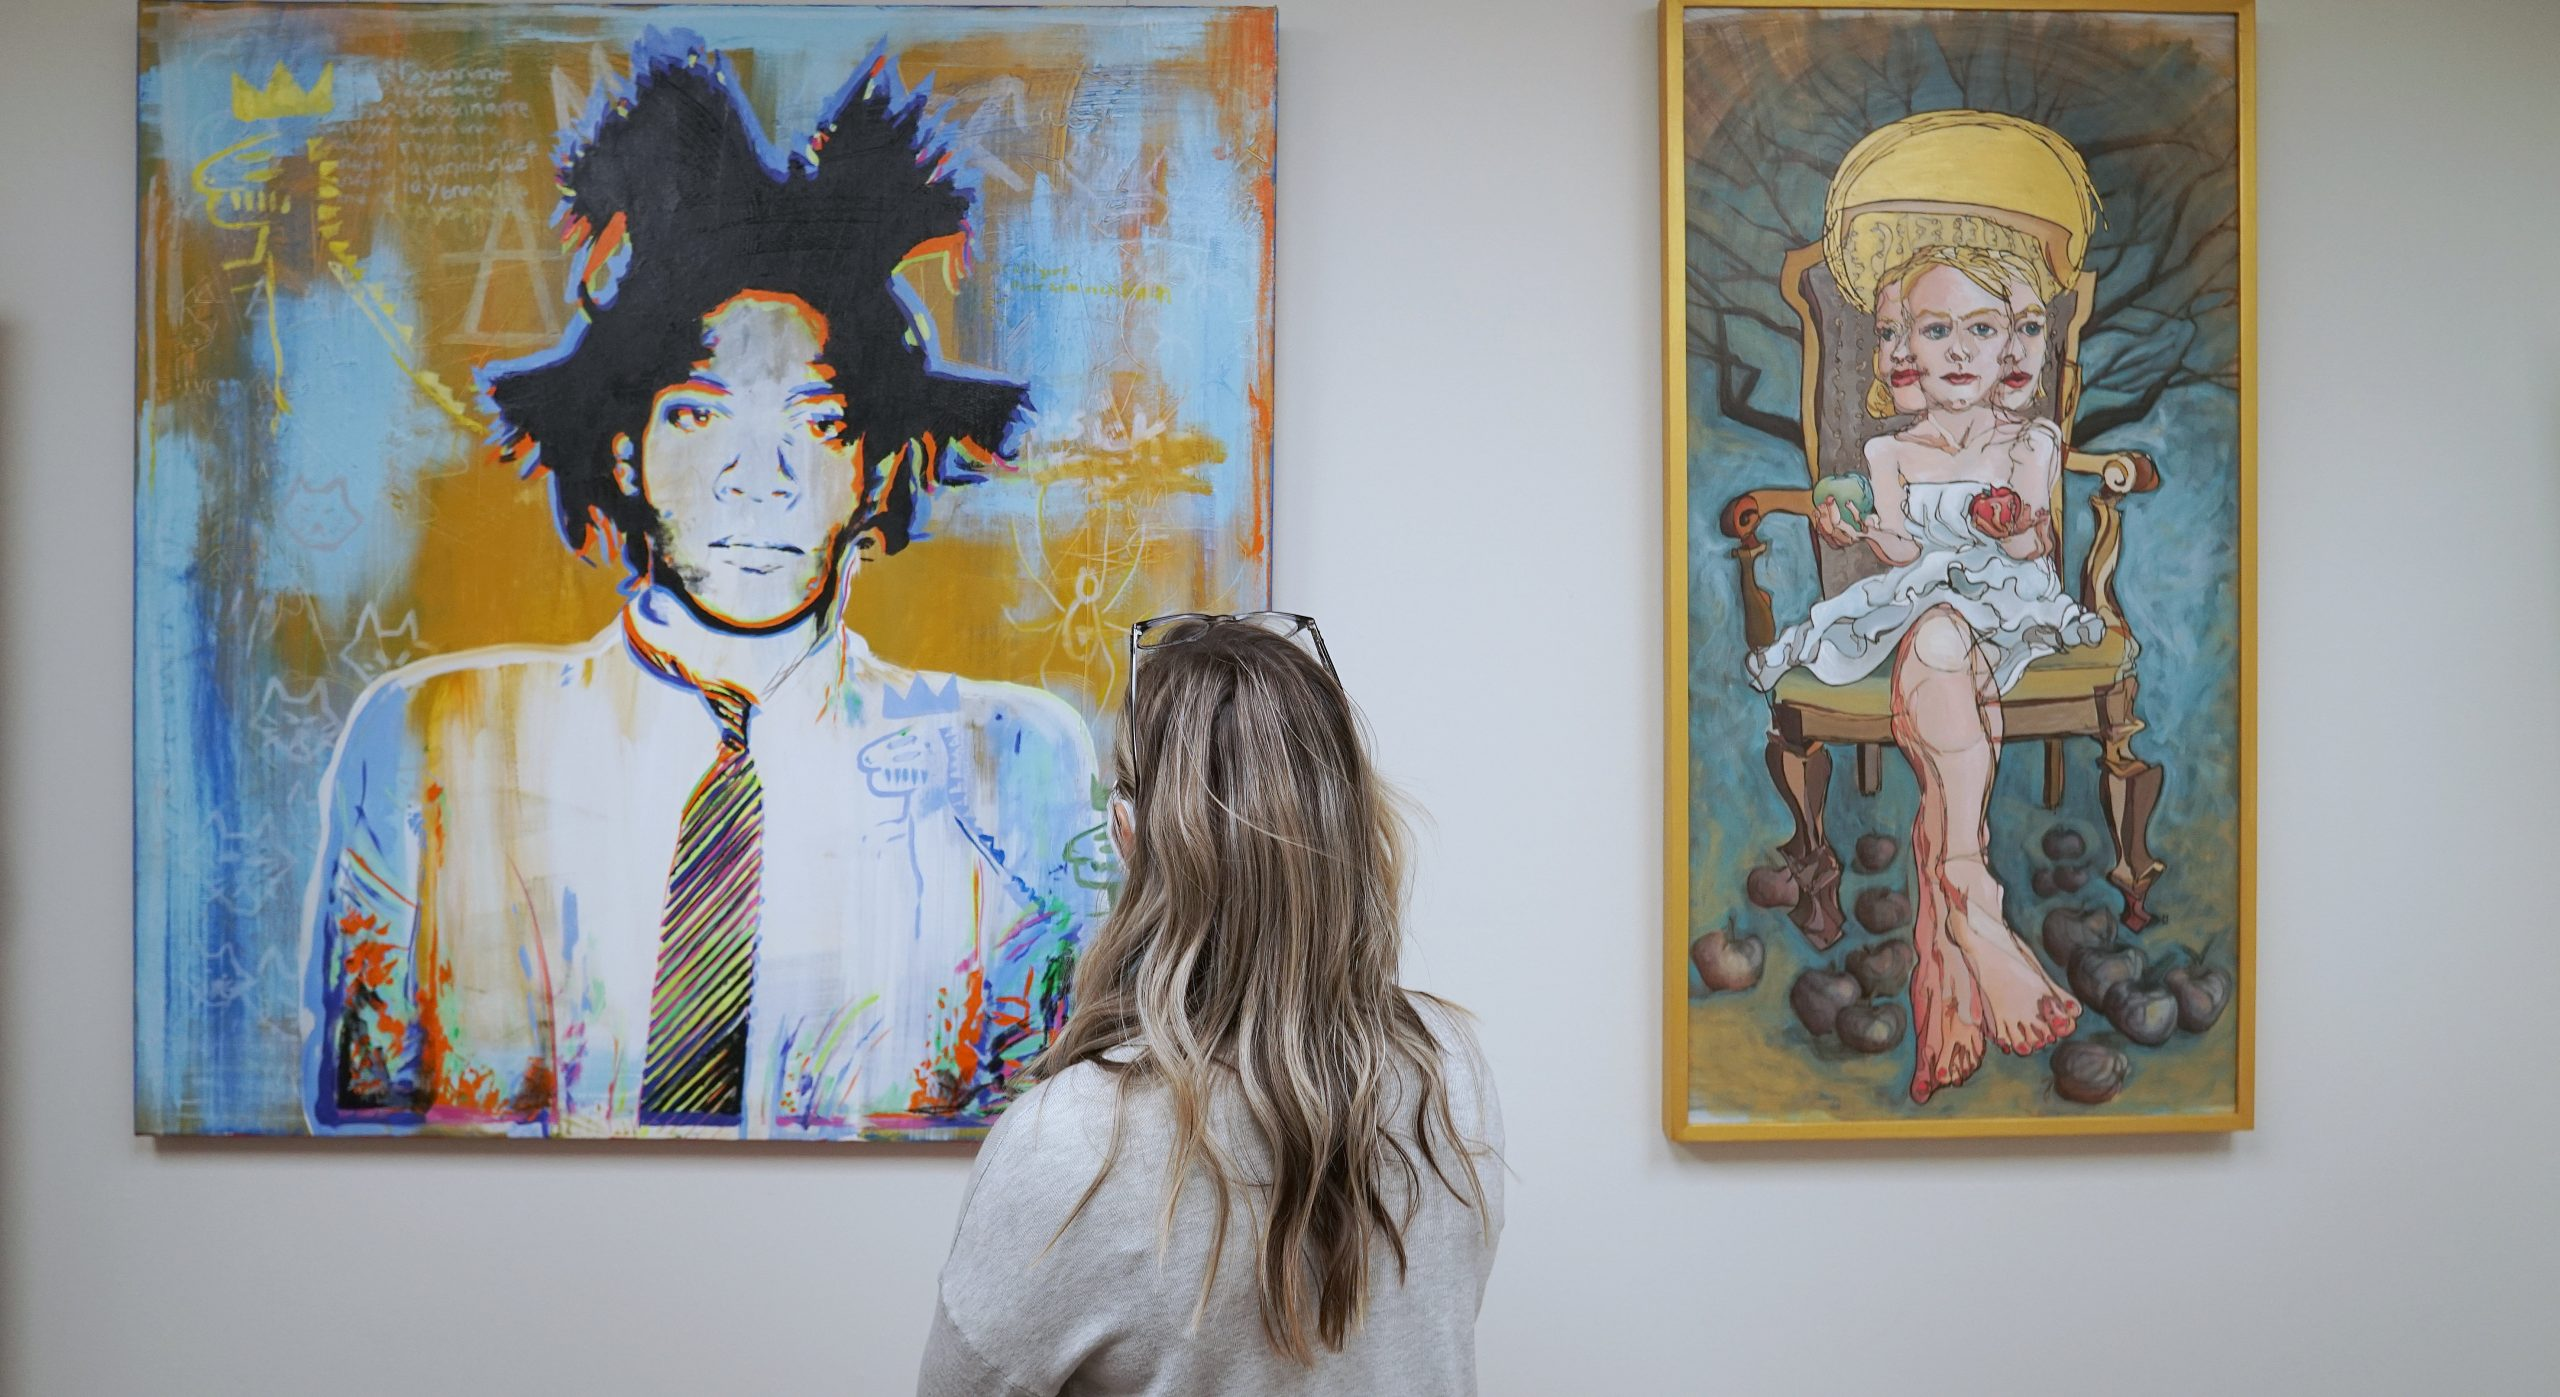 A White woman stands in front of a painting with a person with blues and yellows